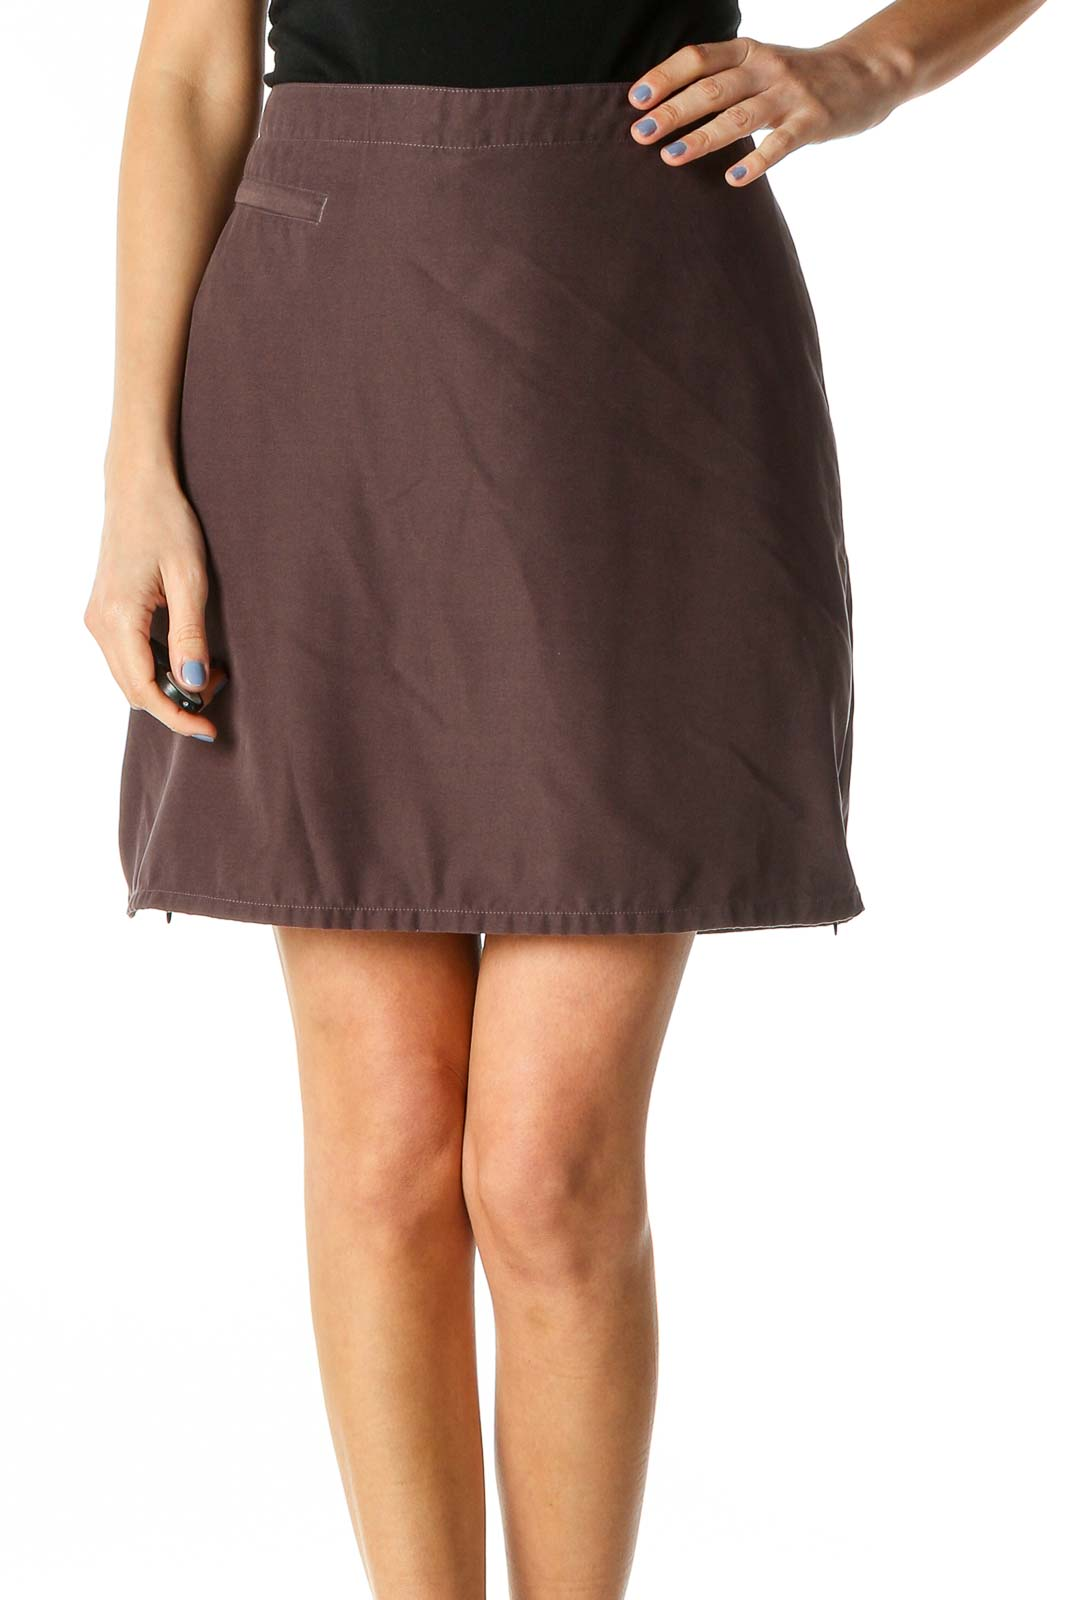 Brown A-Line Skirt Front